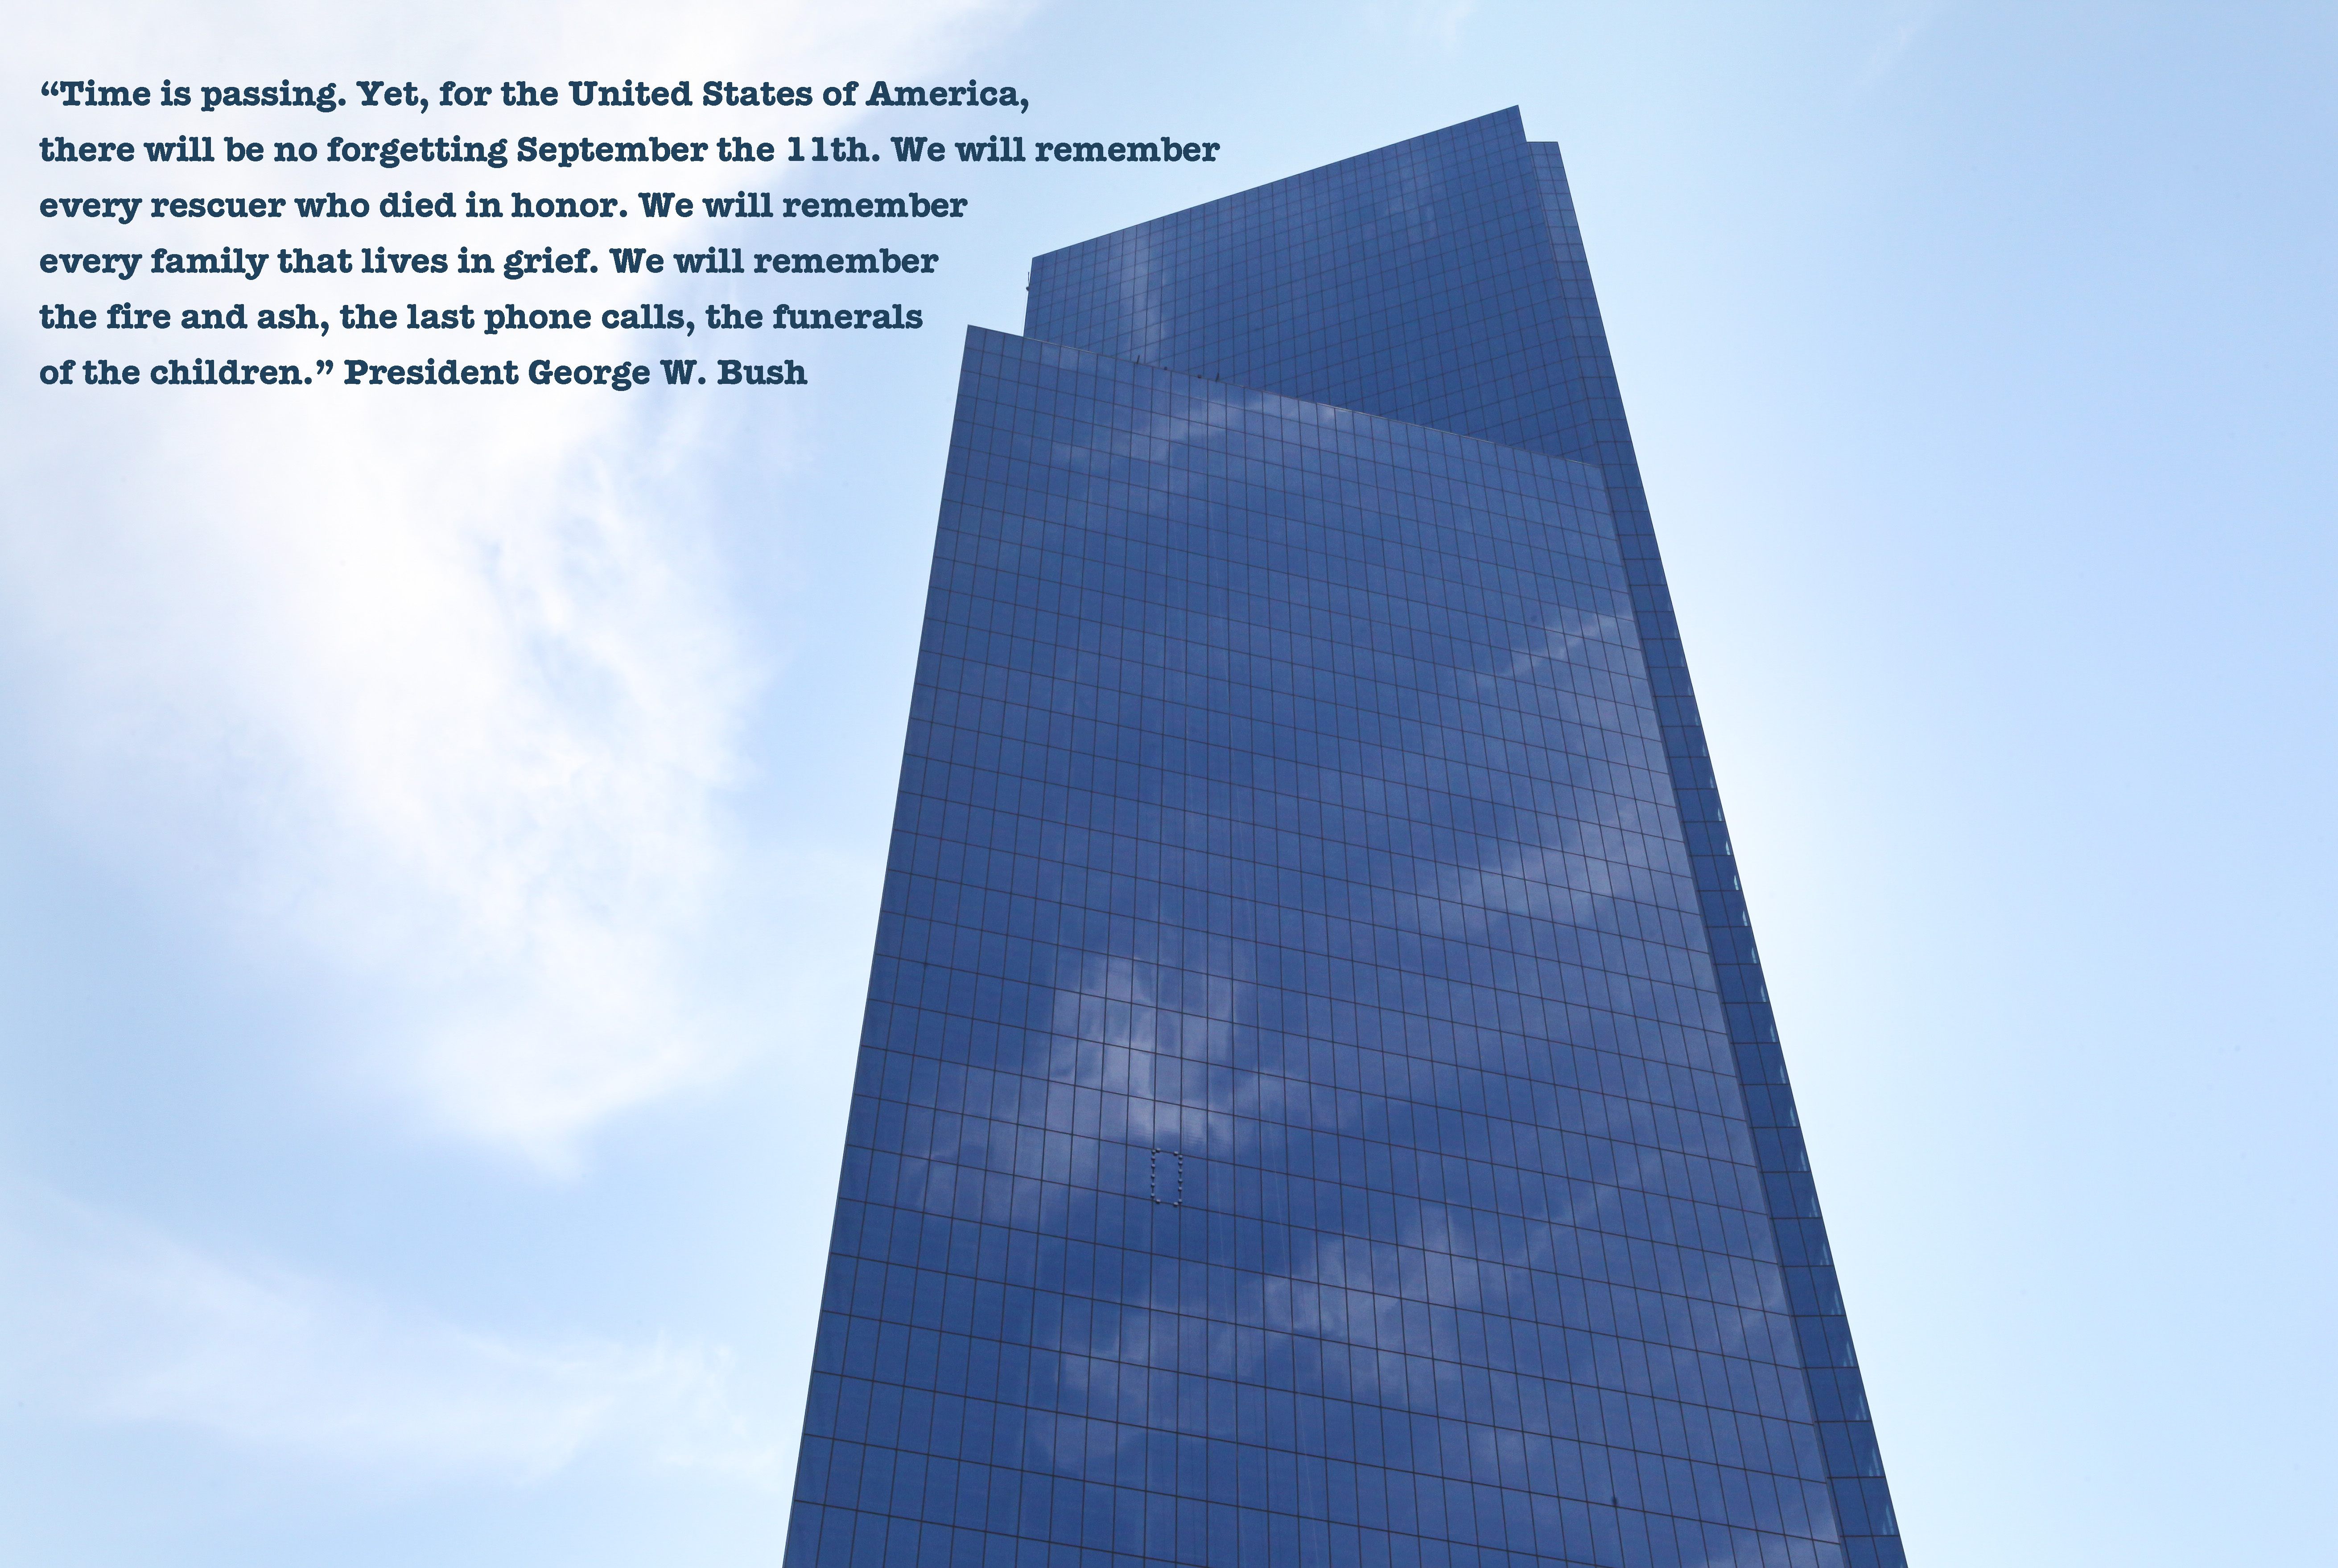 9/11 george bush quote